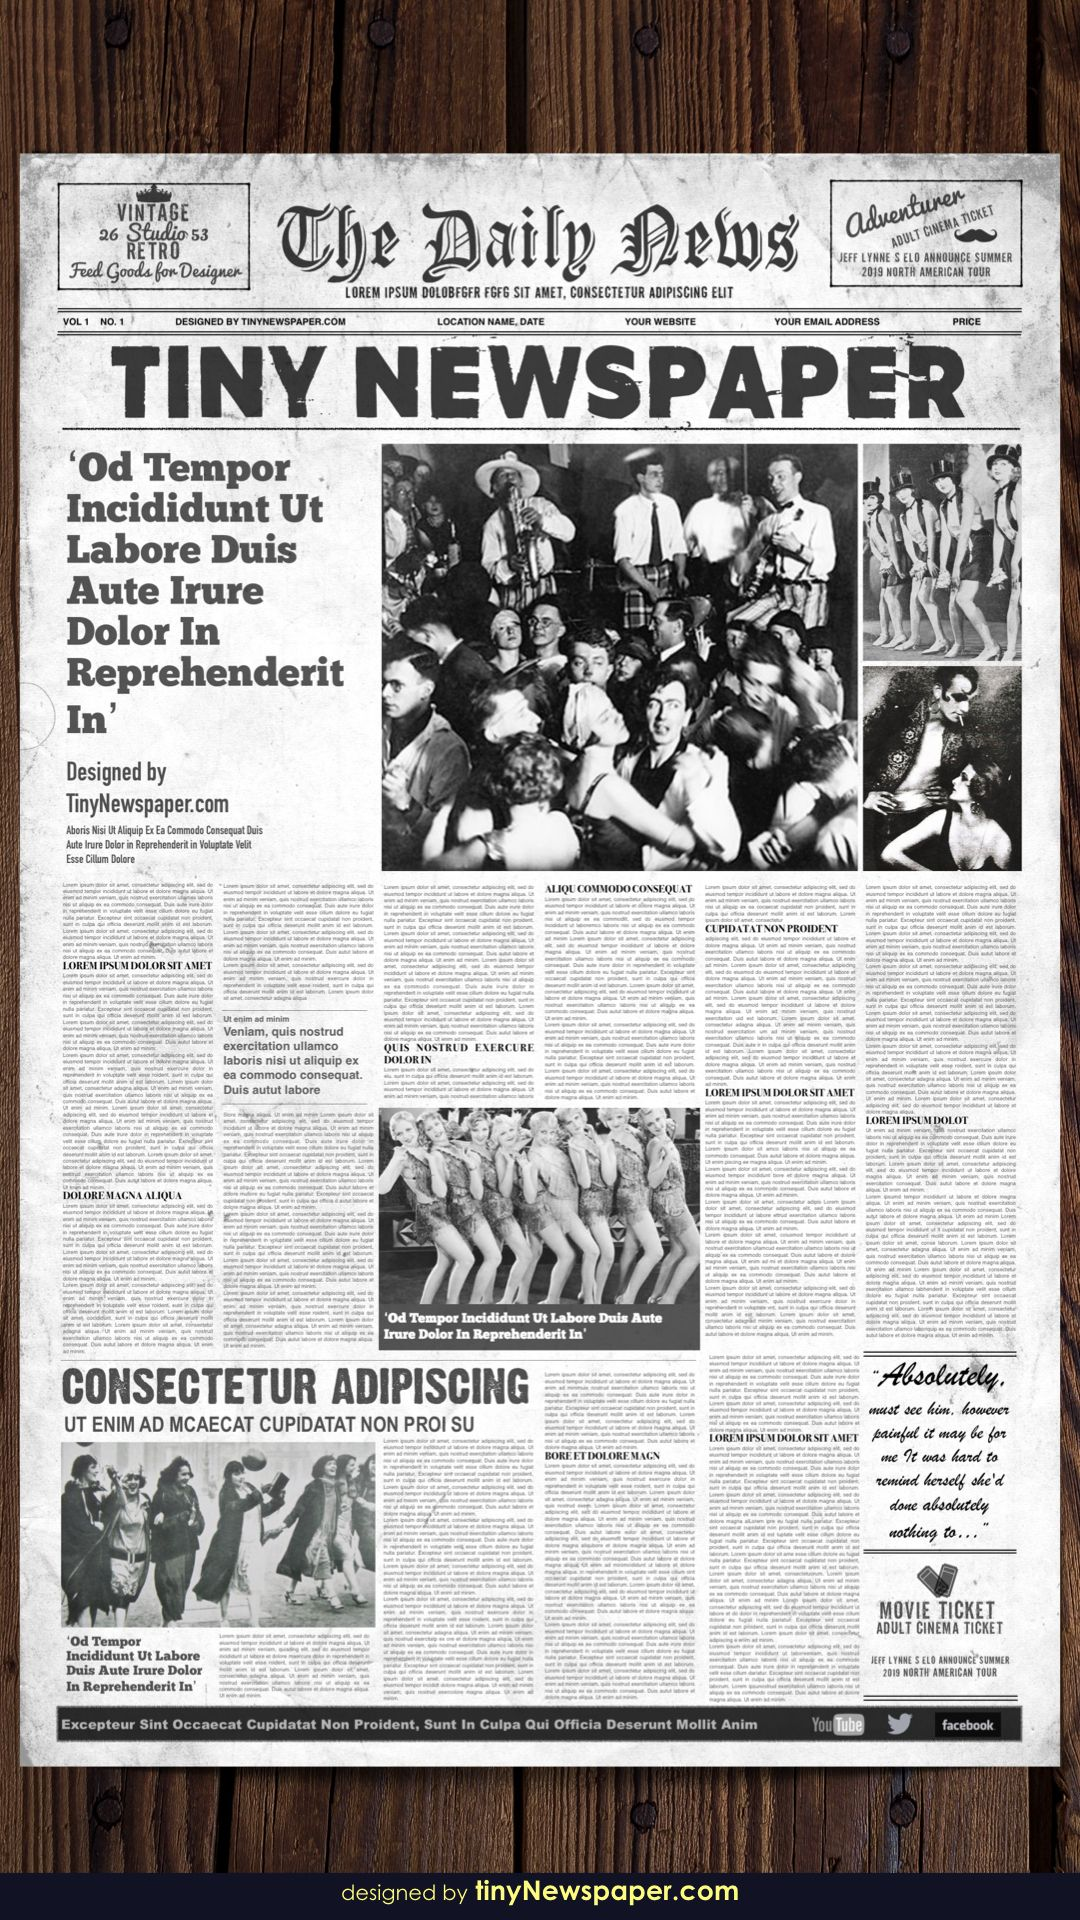 1920 S Vintage Newspaper Template Word For Old Newspaper Template Word Free Best Template Ideas Newspaper Template Word Newspaper Template Vintage Newspaper